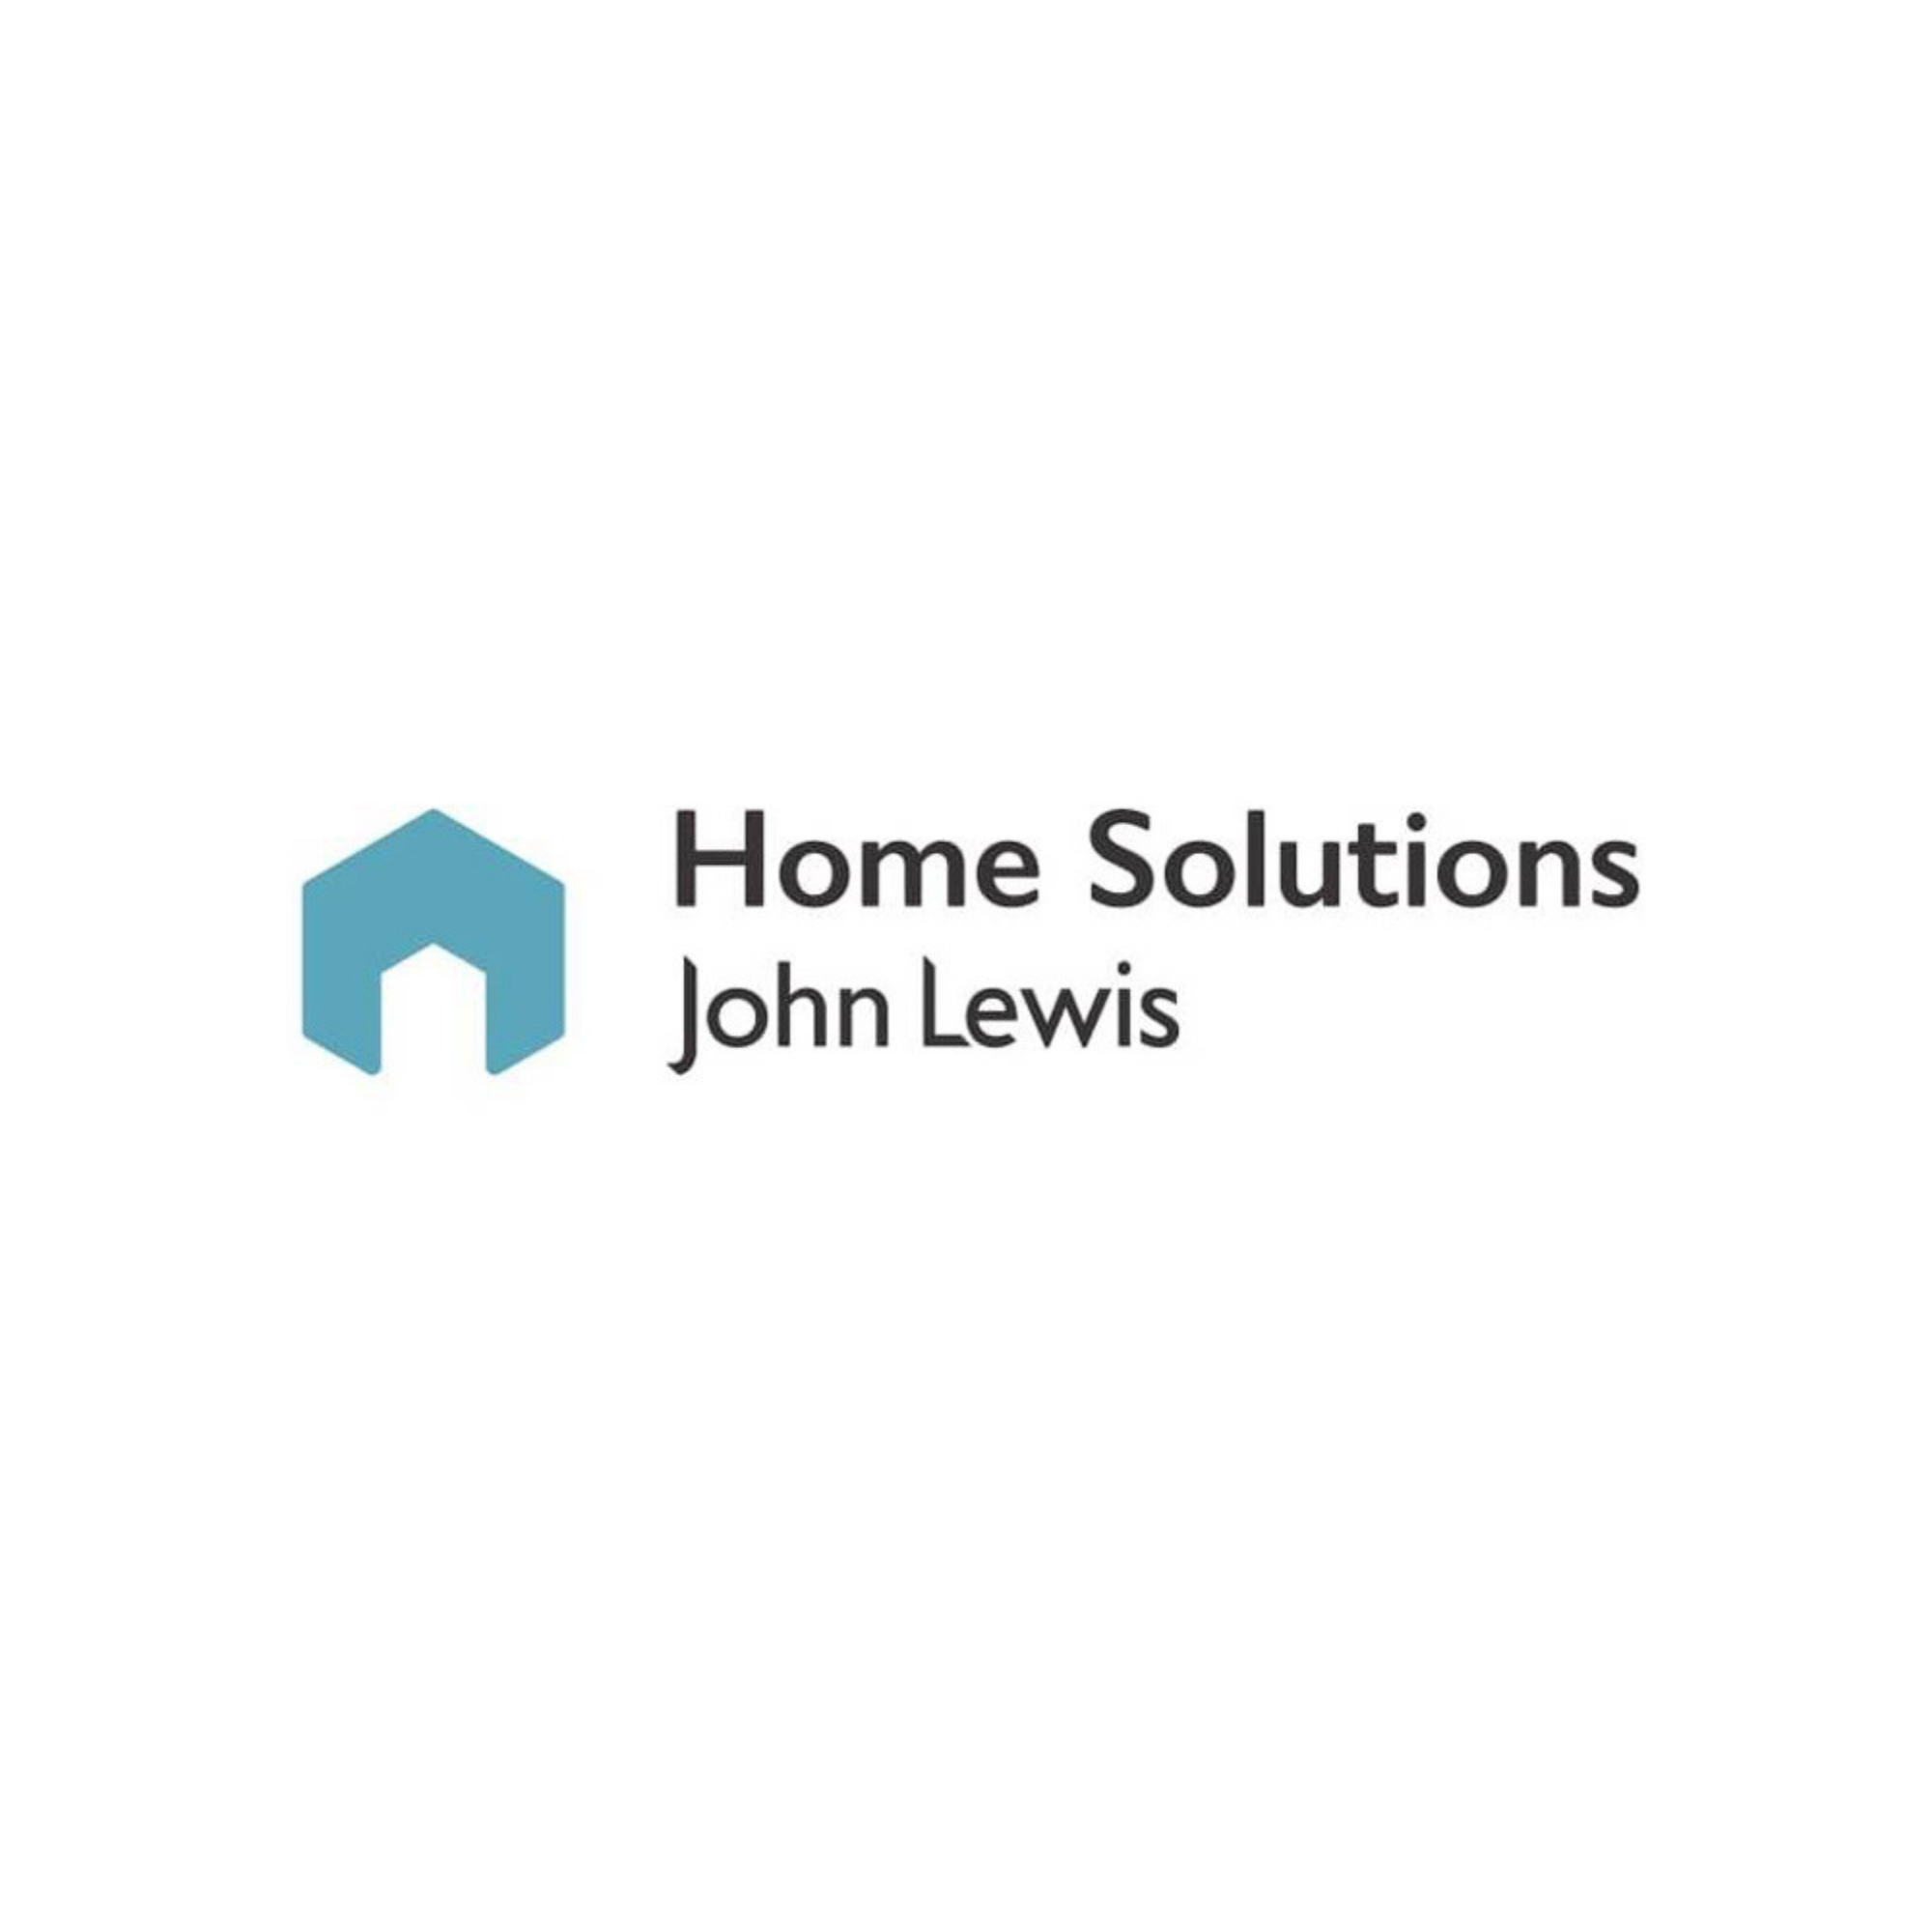 Teak_Interiors_Carpentry_Carpenters_In_Berkshire_Carpenters_In_Reading_John_Lewis_Home_Solutions.png